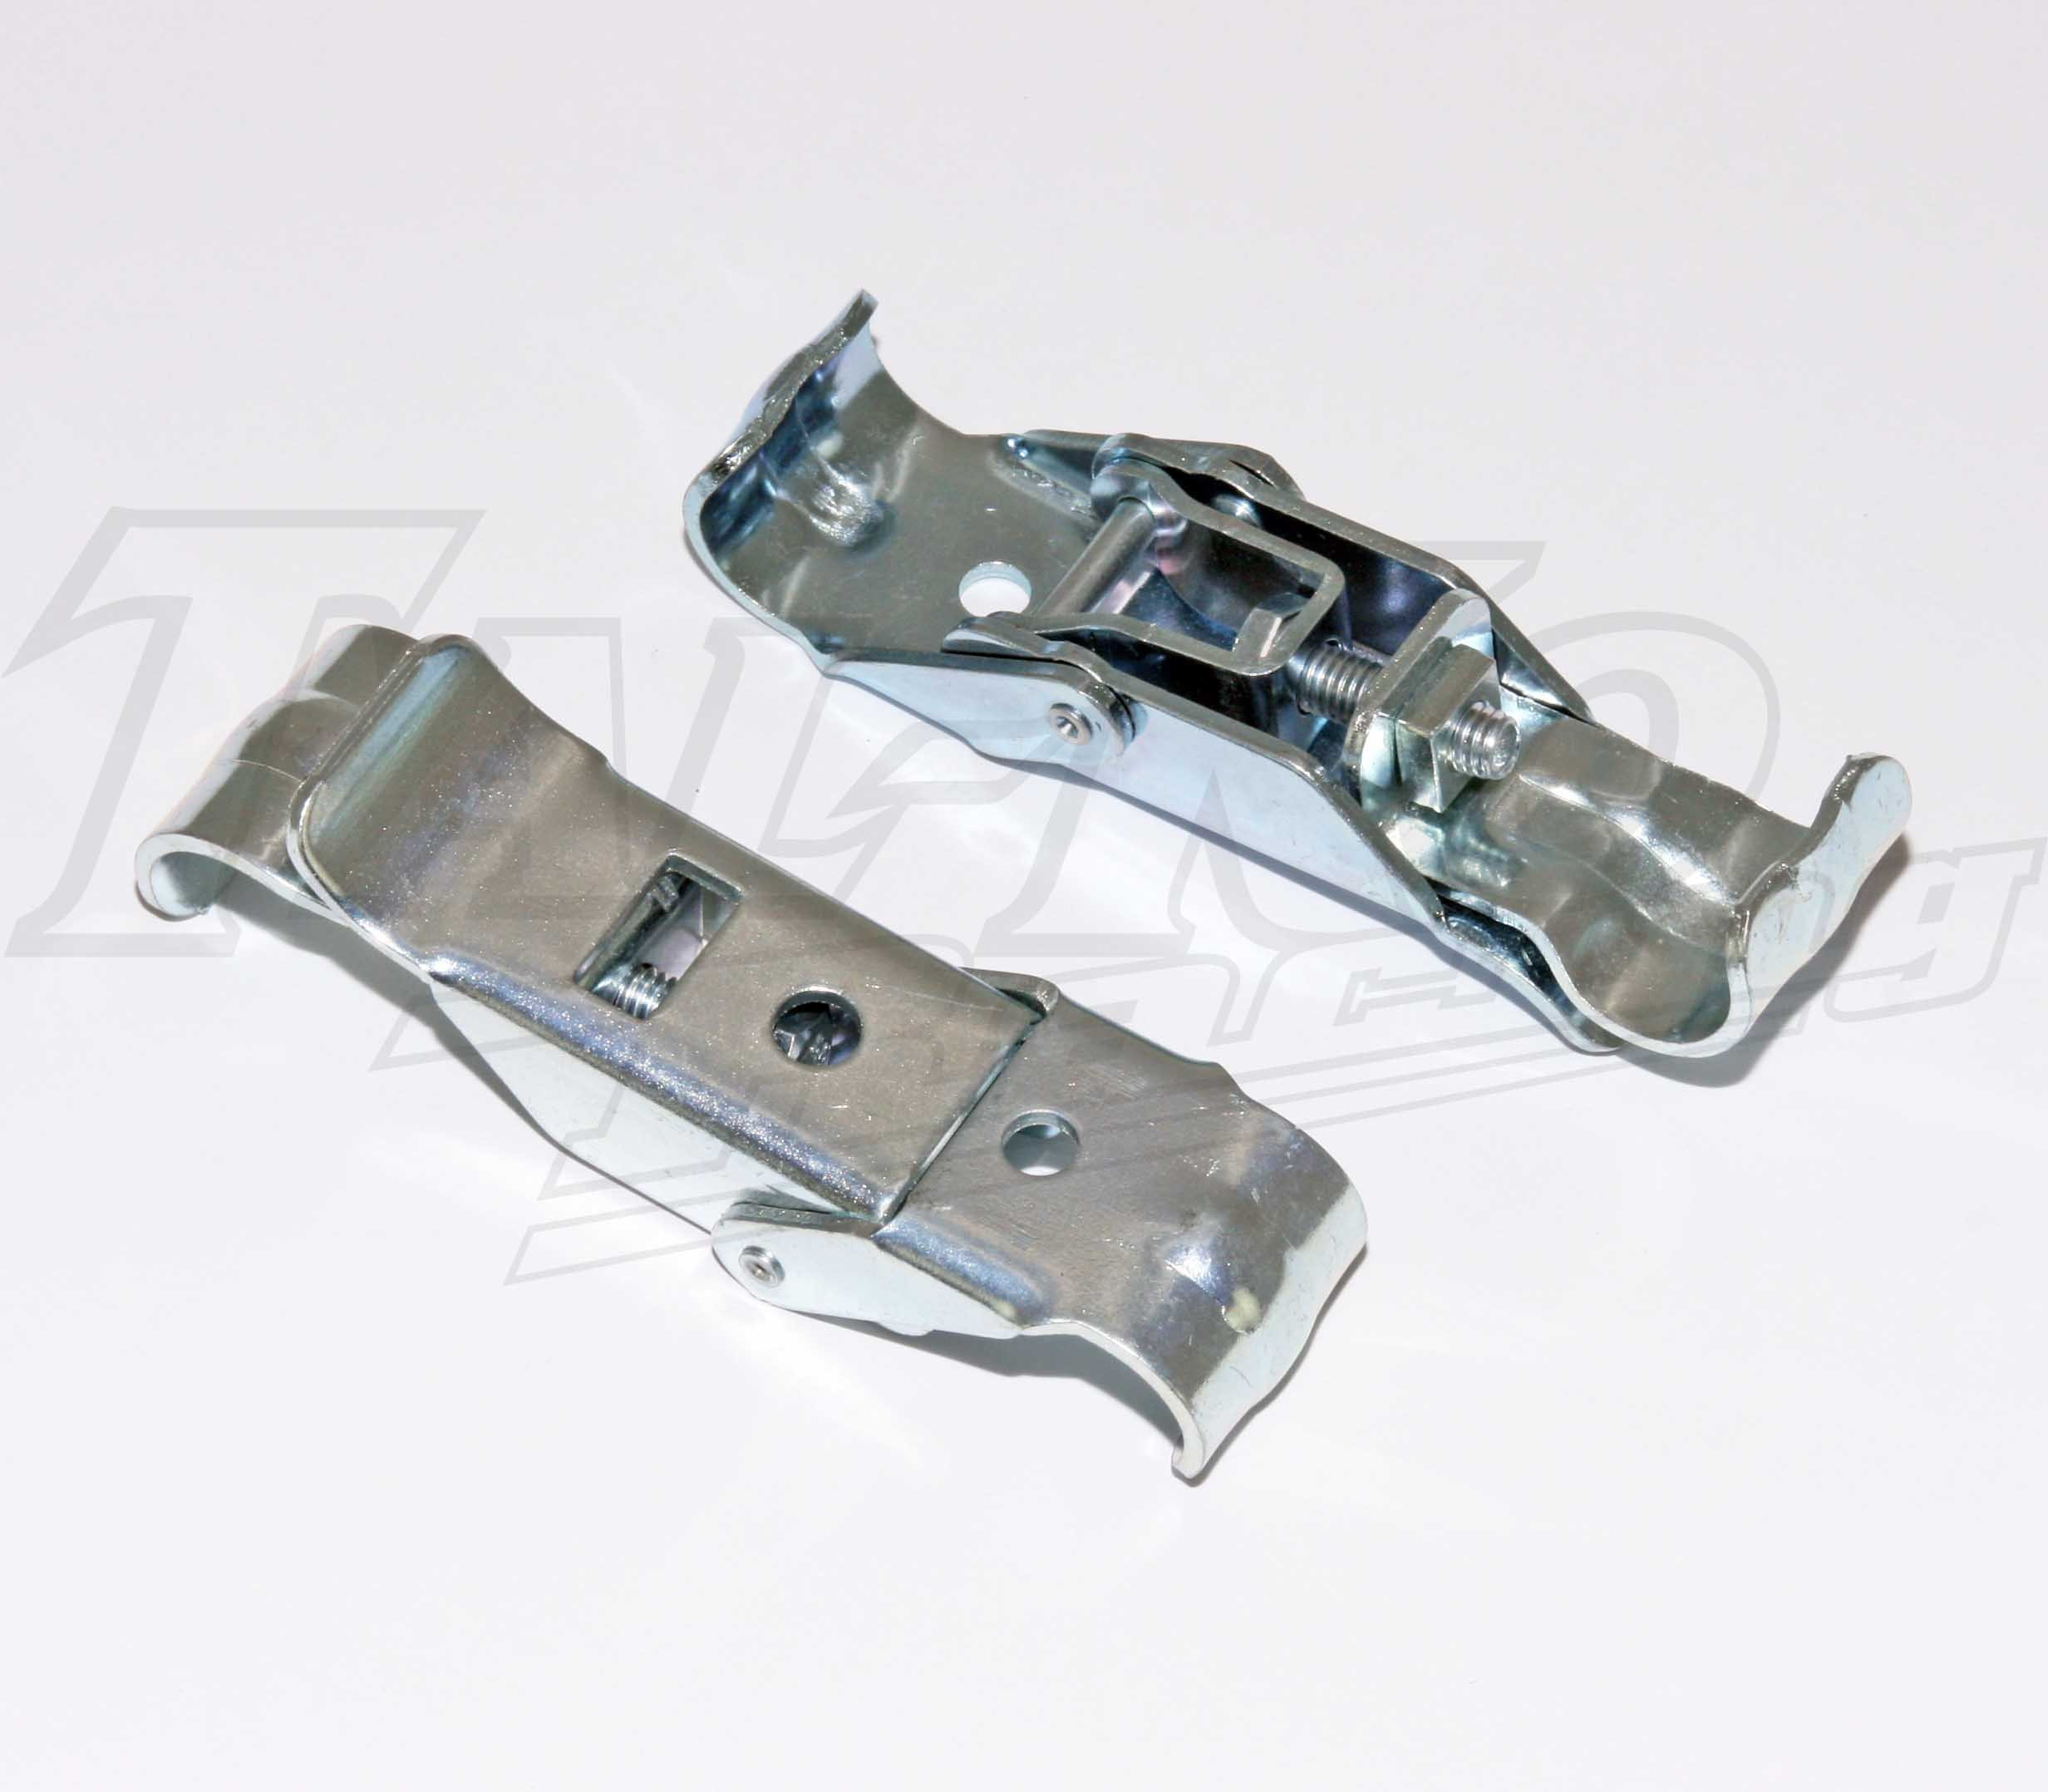 SNAP QUICK RELEASE CLAMPS SET 2